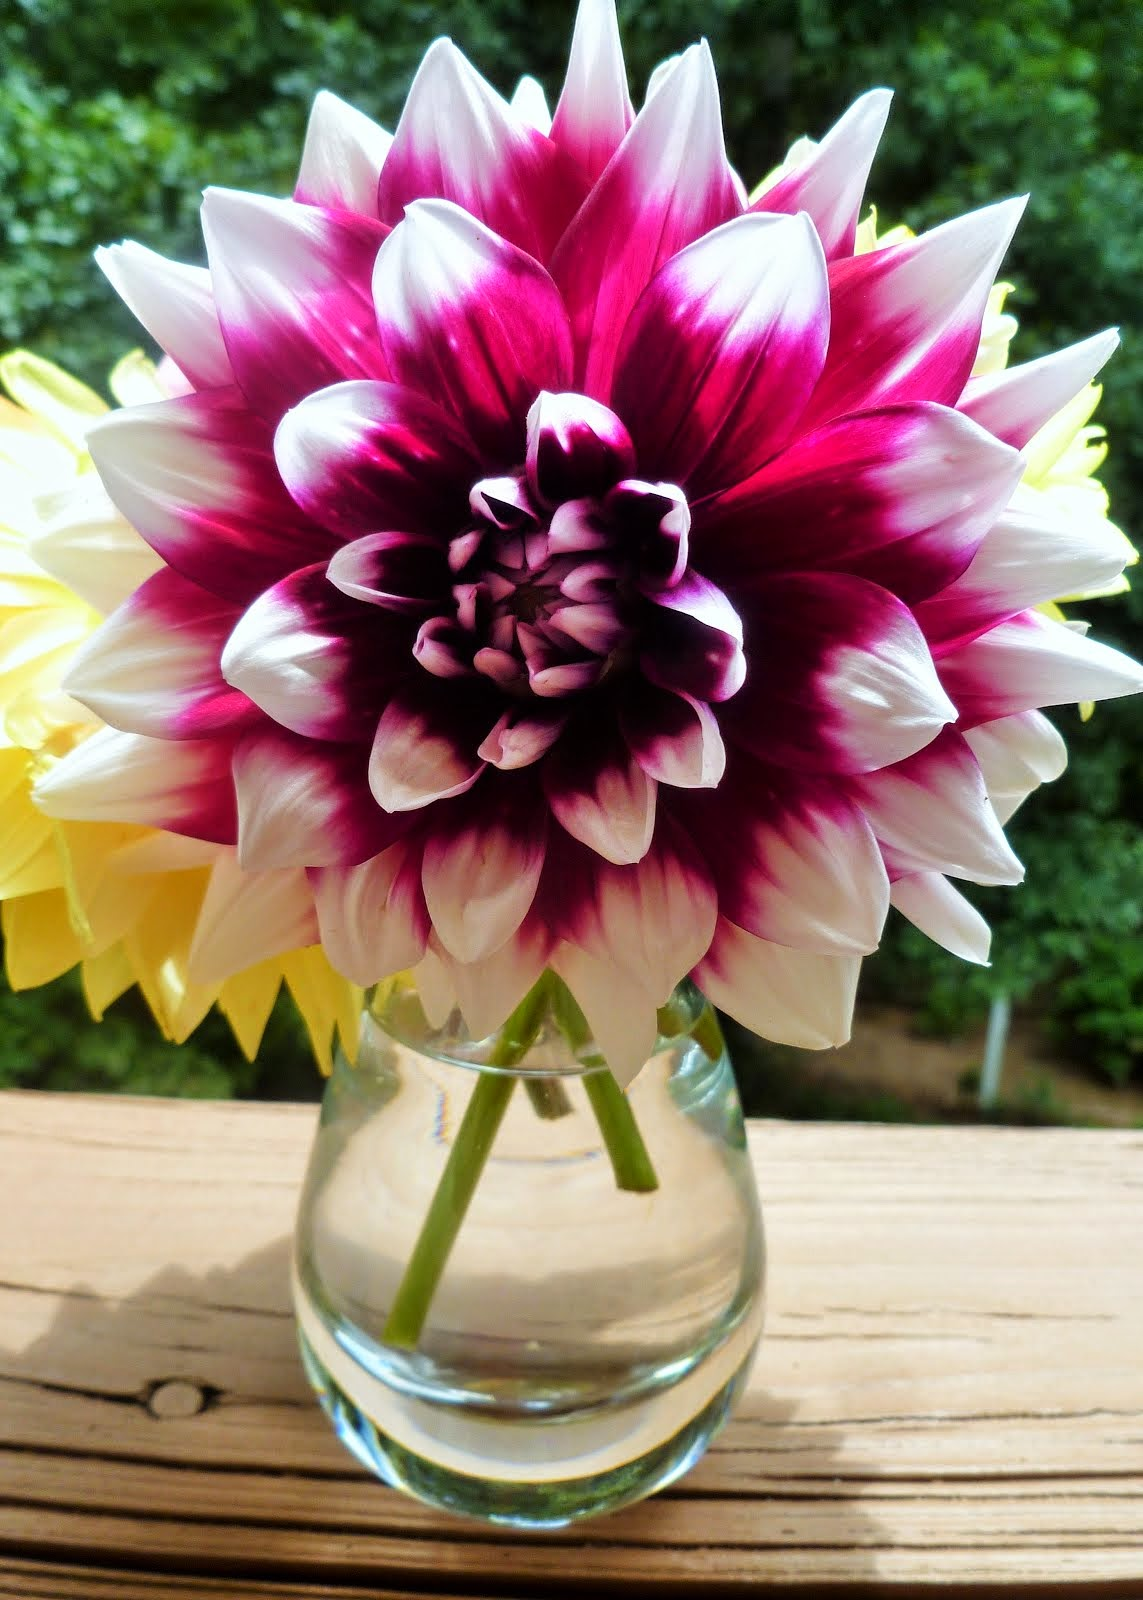 Now In Bloom, Dahlias